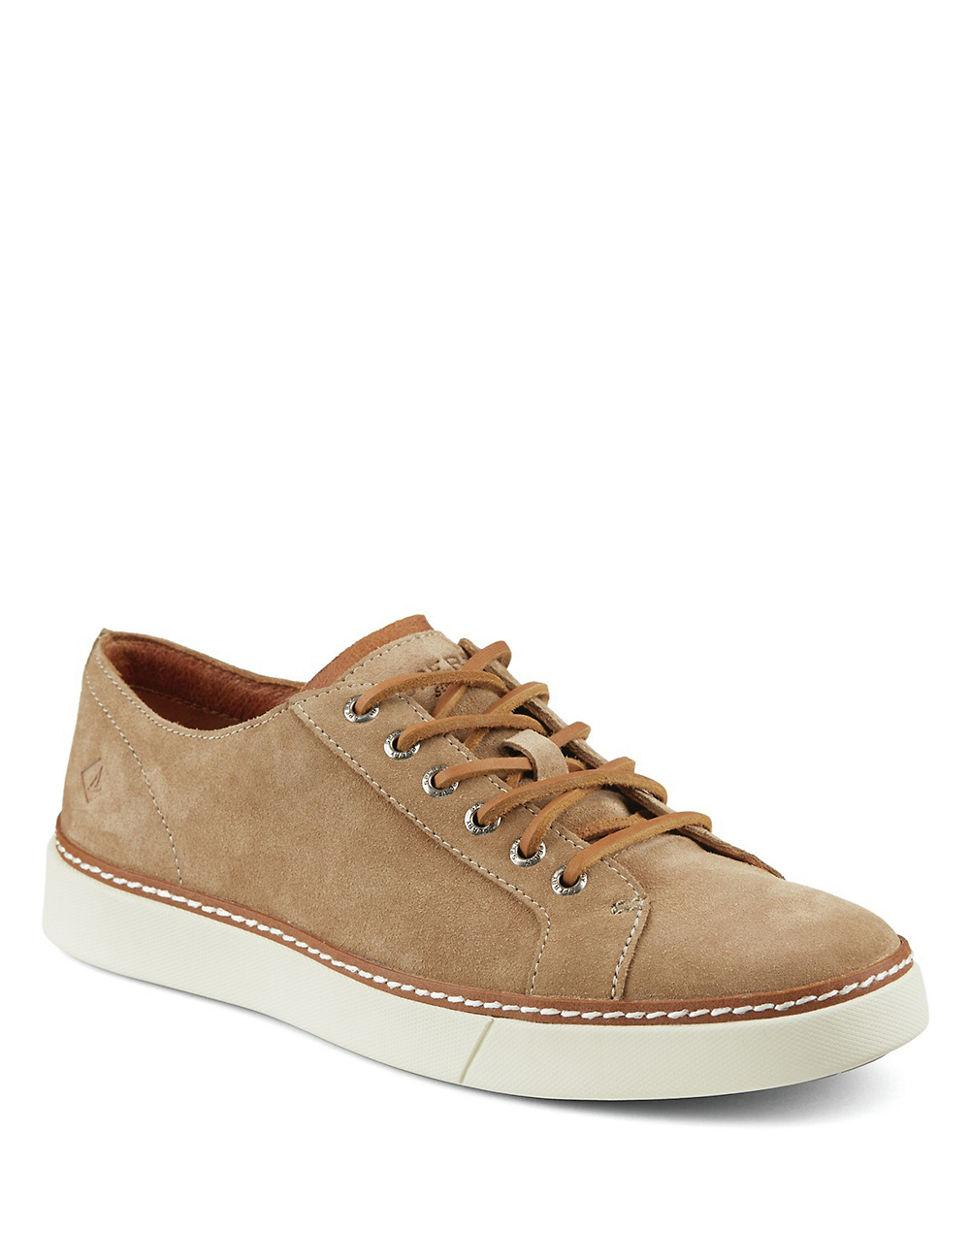 Burberry Womens Shoes Zappos